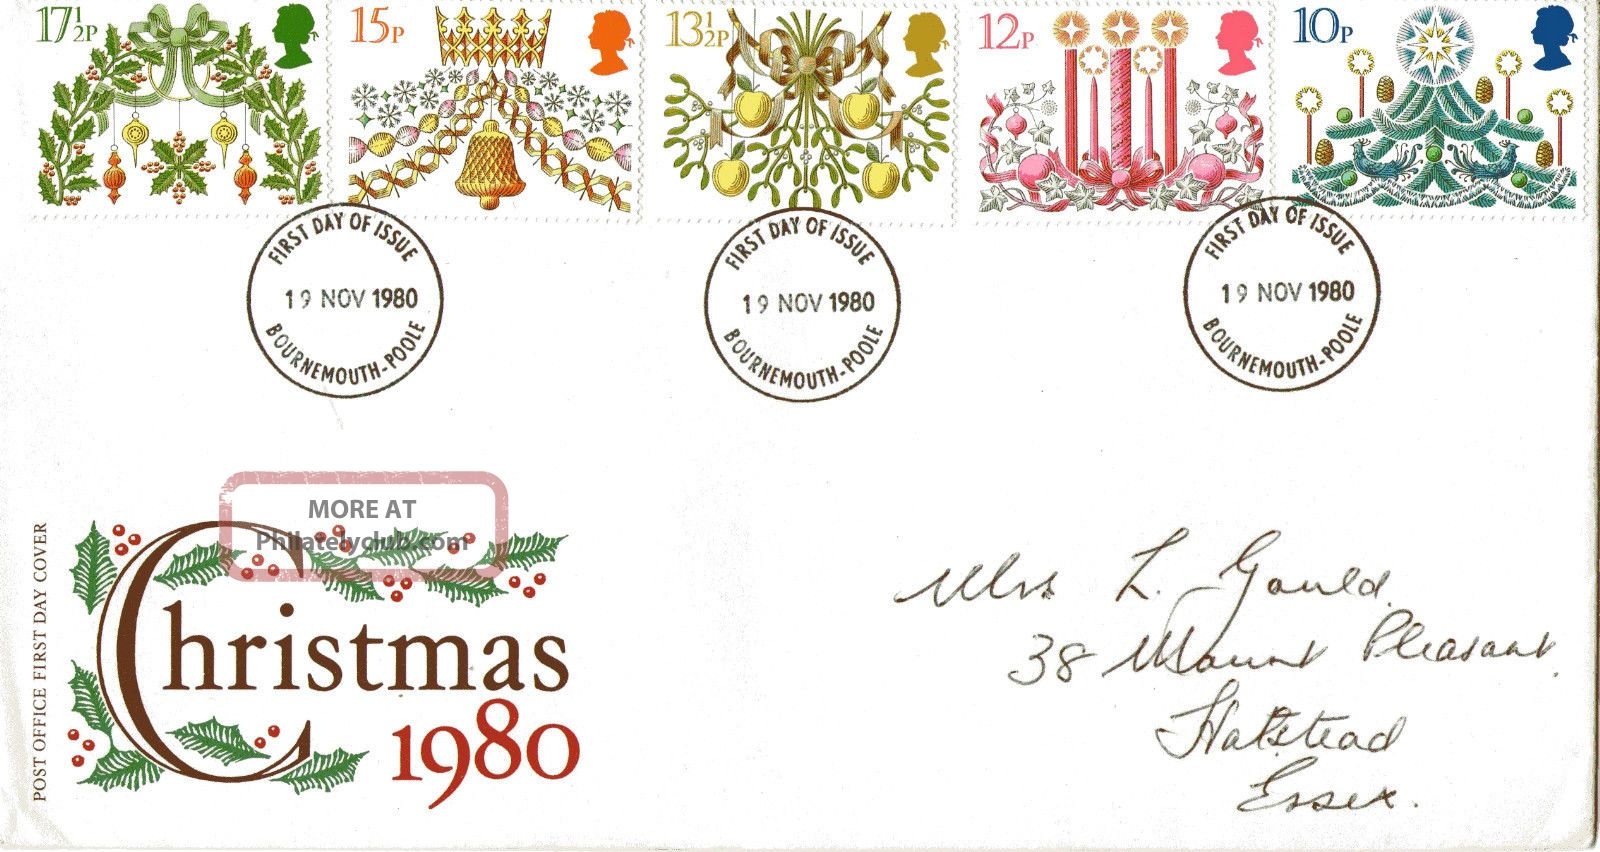 19 November 1980 Christmas Post Office First Day Cover Bournemouth & Poole Fdi Topical Stamps photo